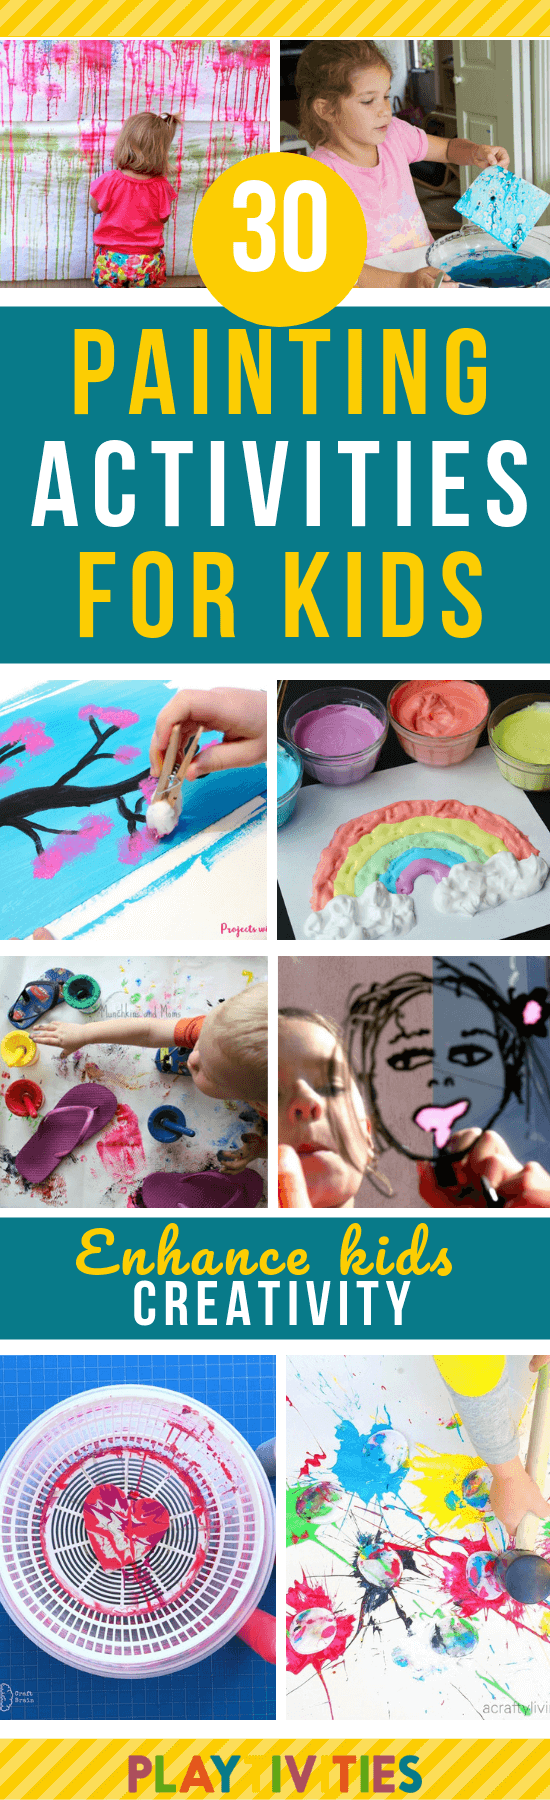 Painting Activities for kids